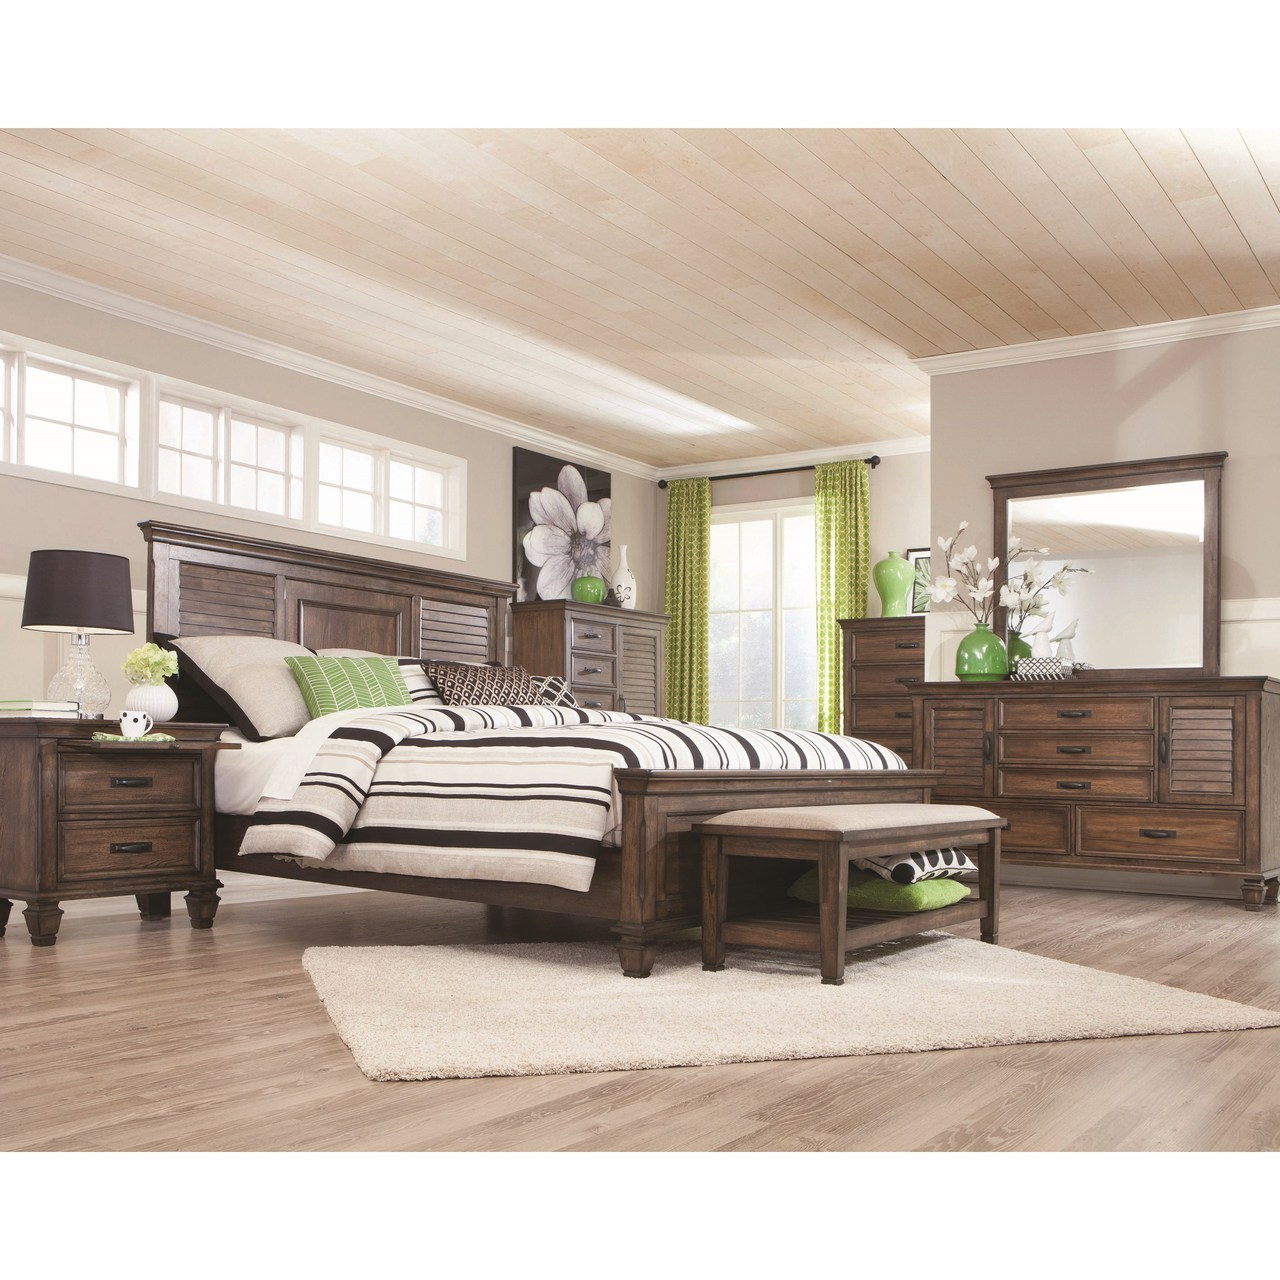 The 7pc Franco Bedroom Collection Miami Direct Furniture